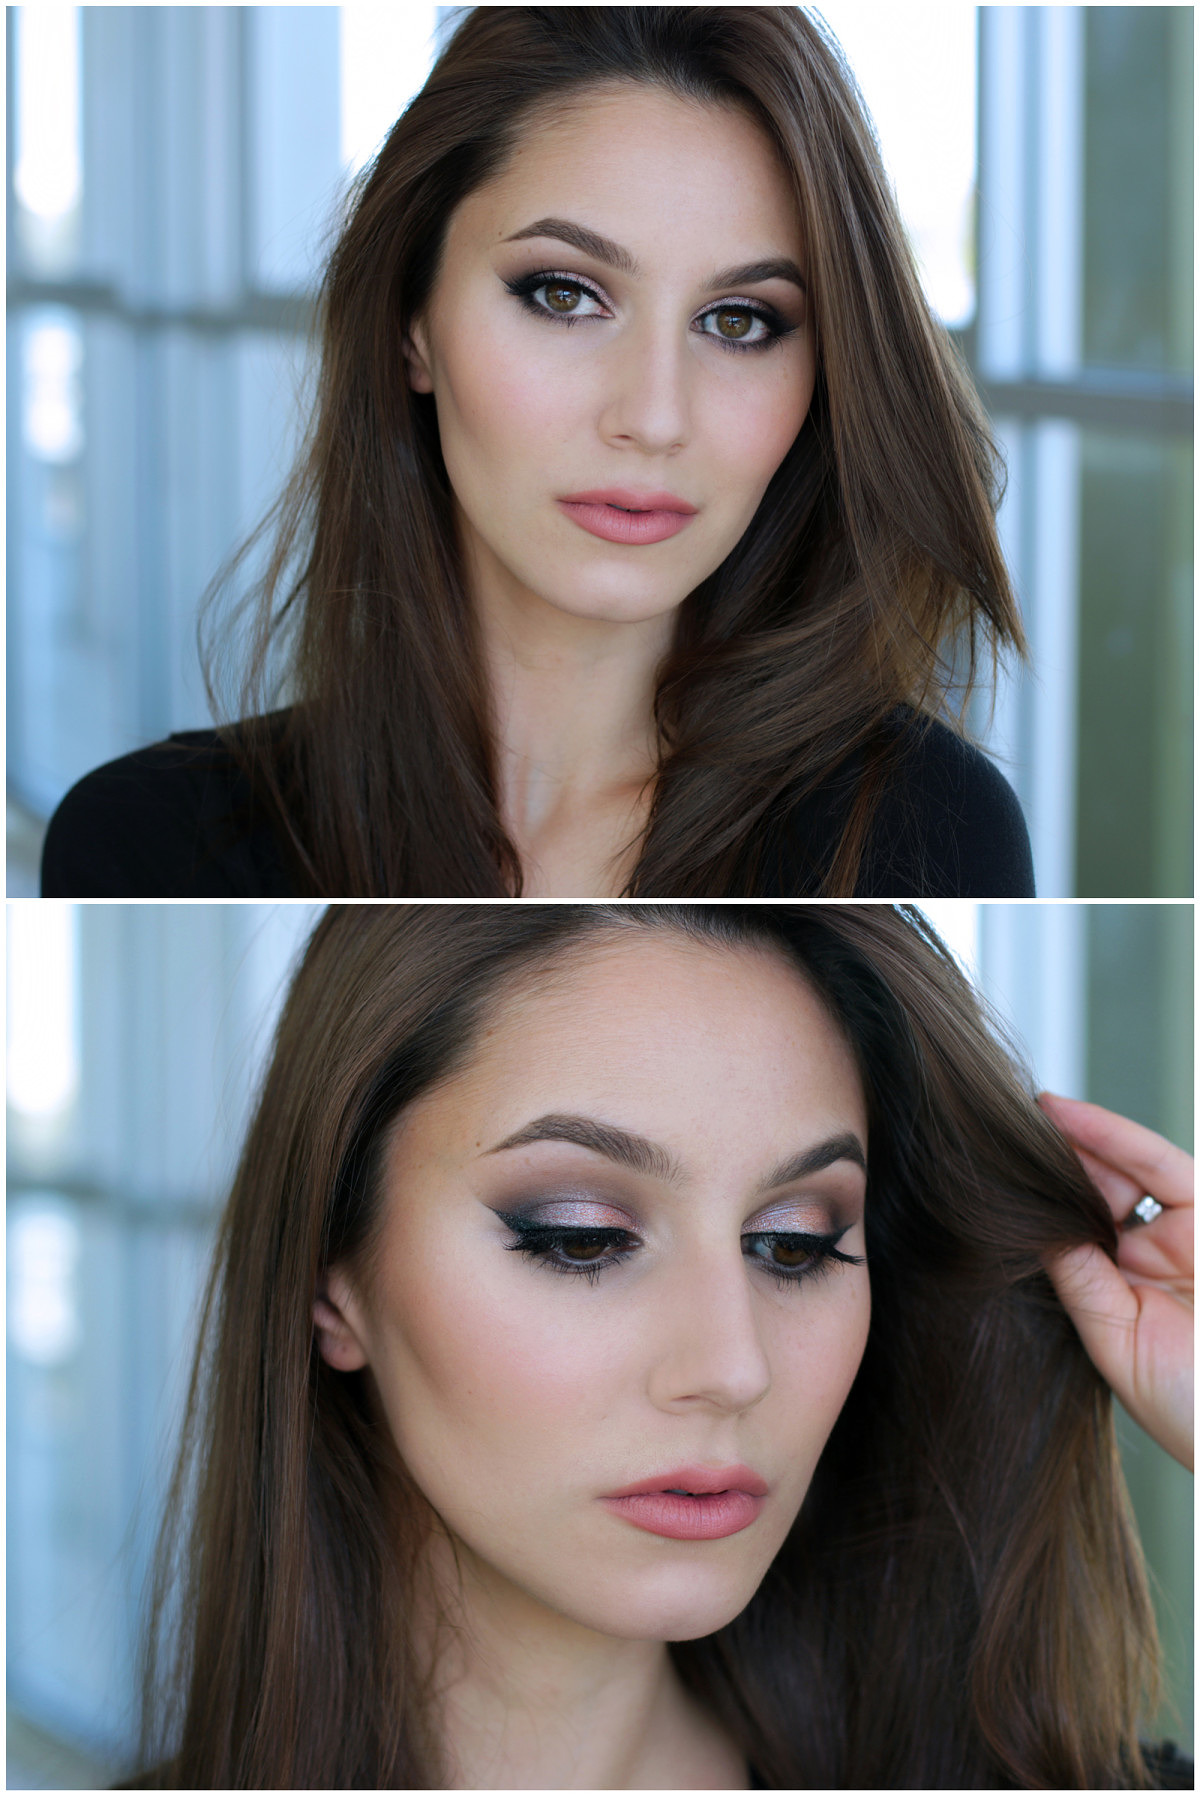 Party Makeup Tutorial for Photography